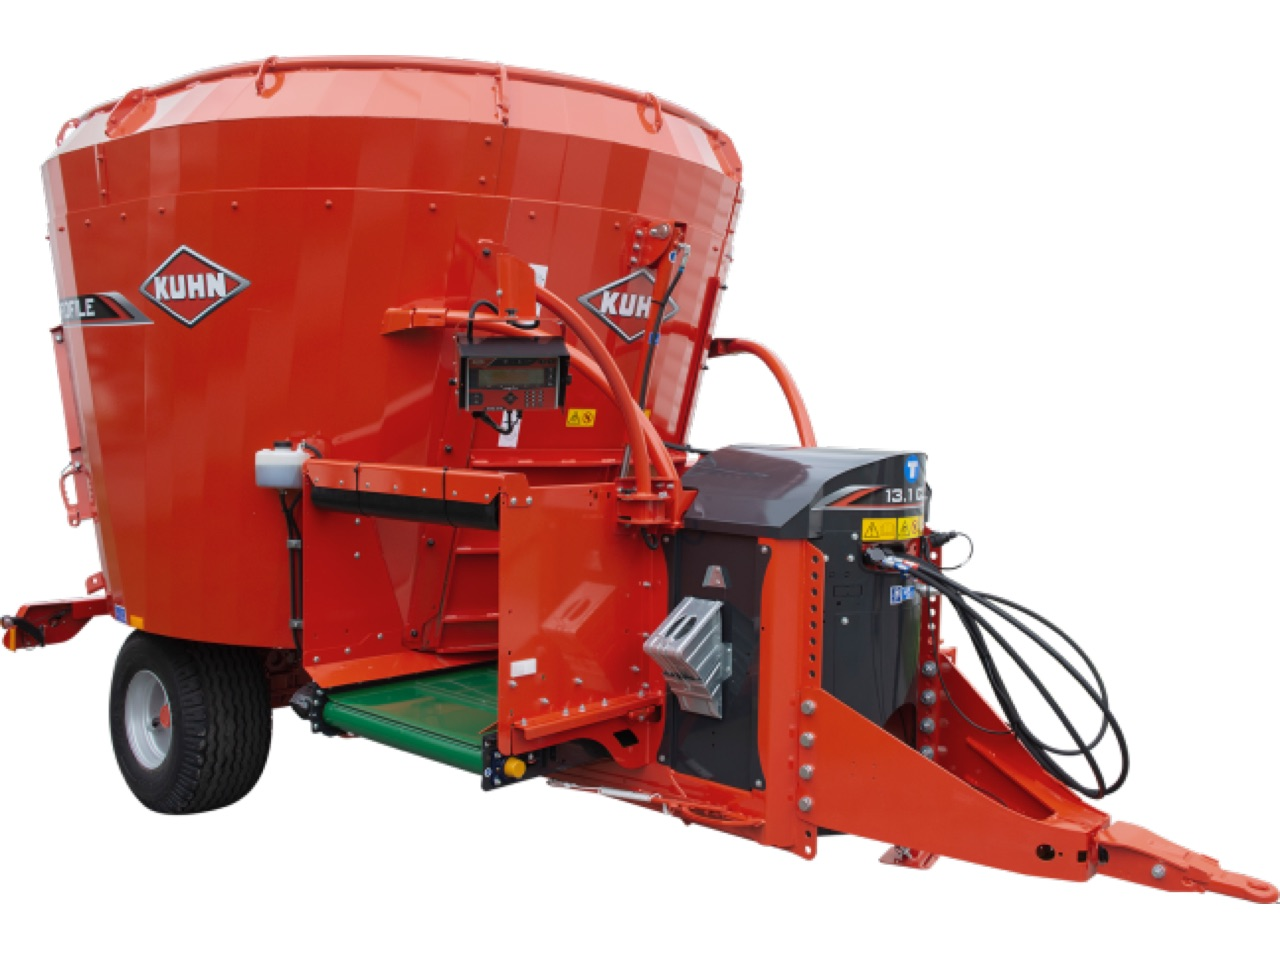 Kuhn Profile 1 CL Profile 12.1 CL